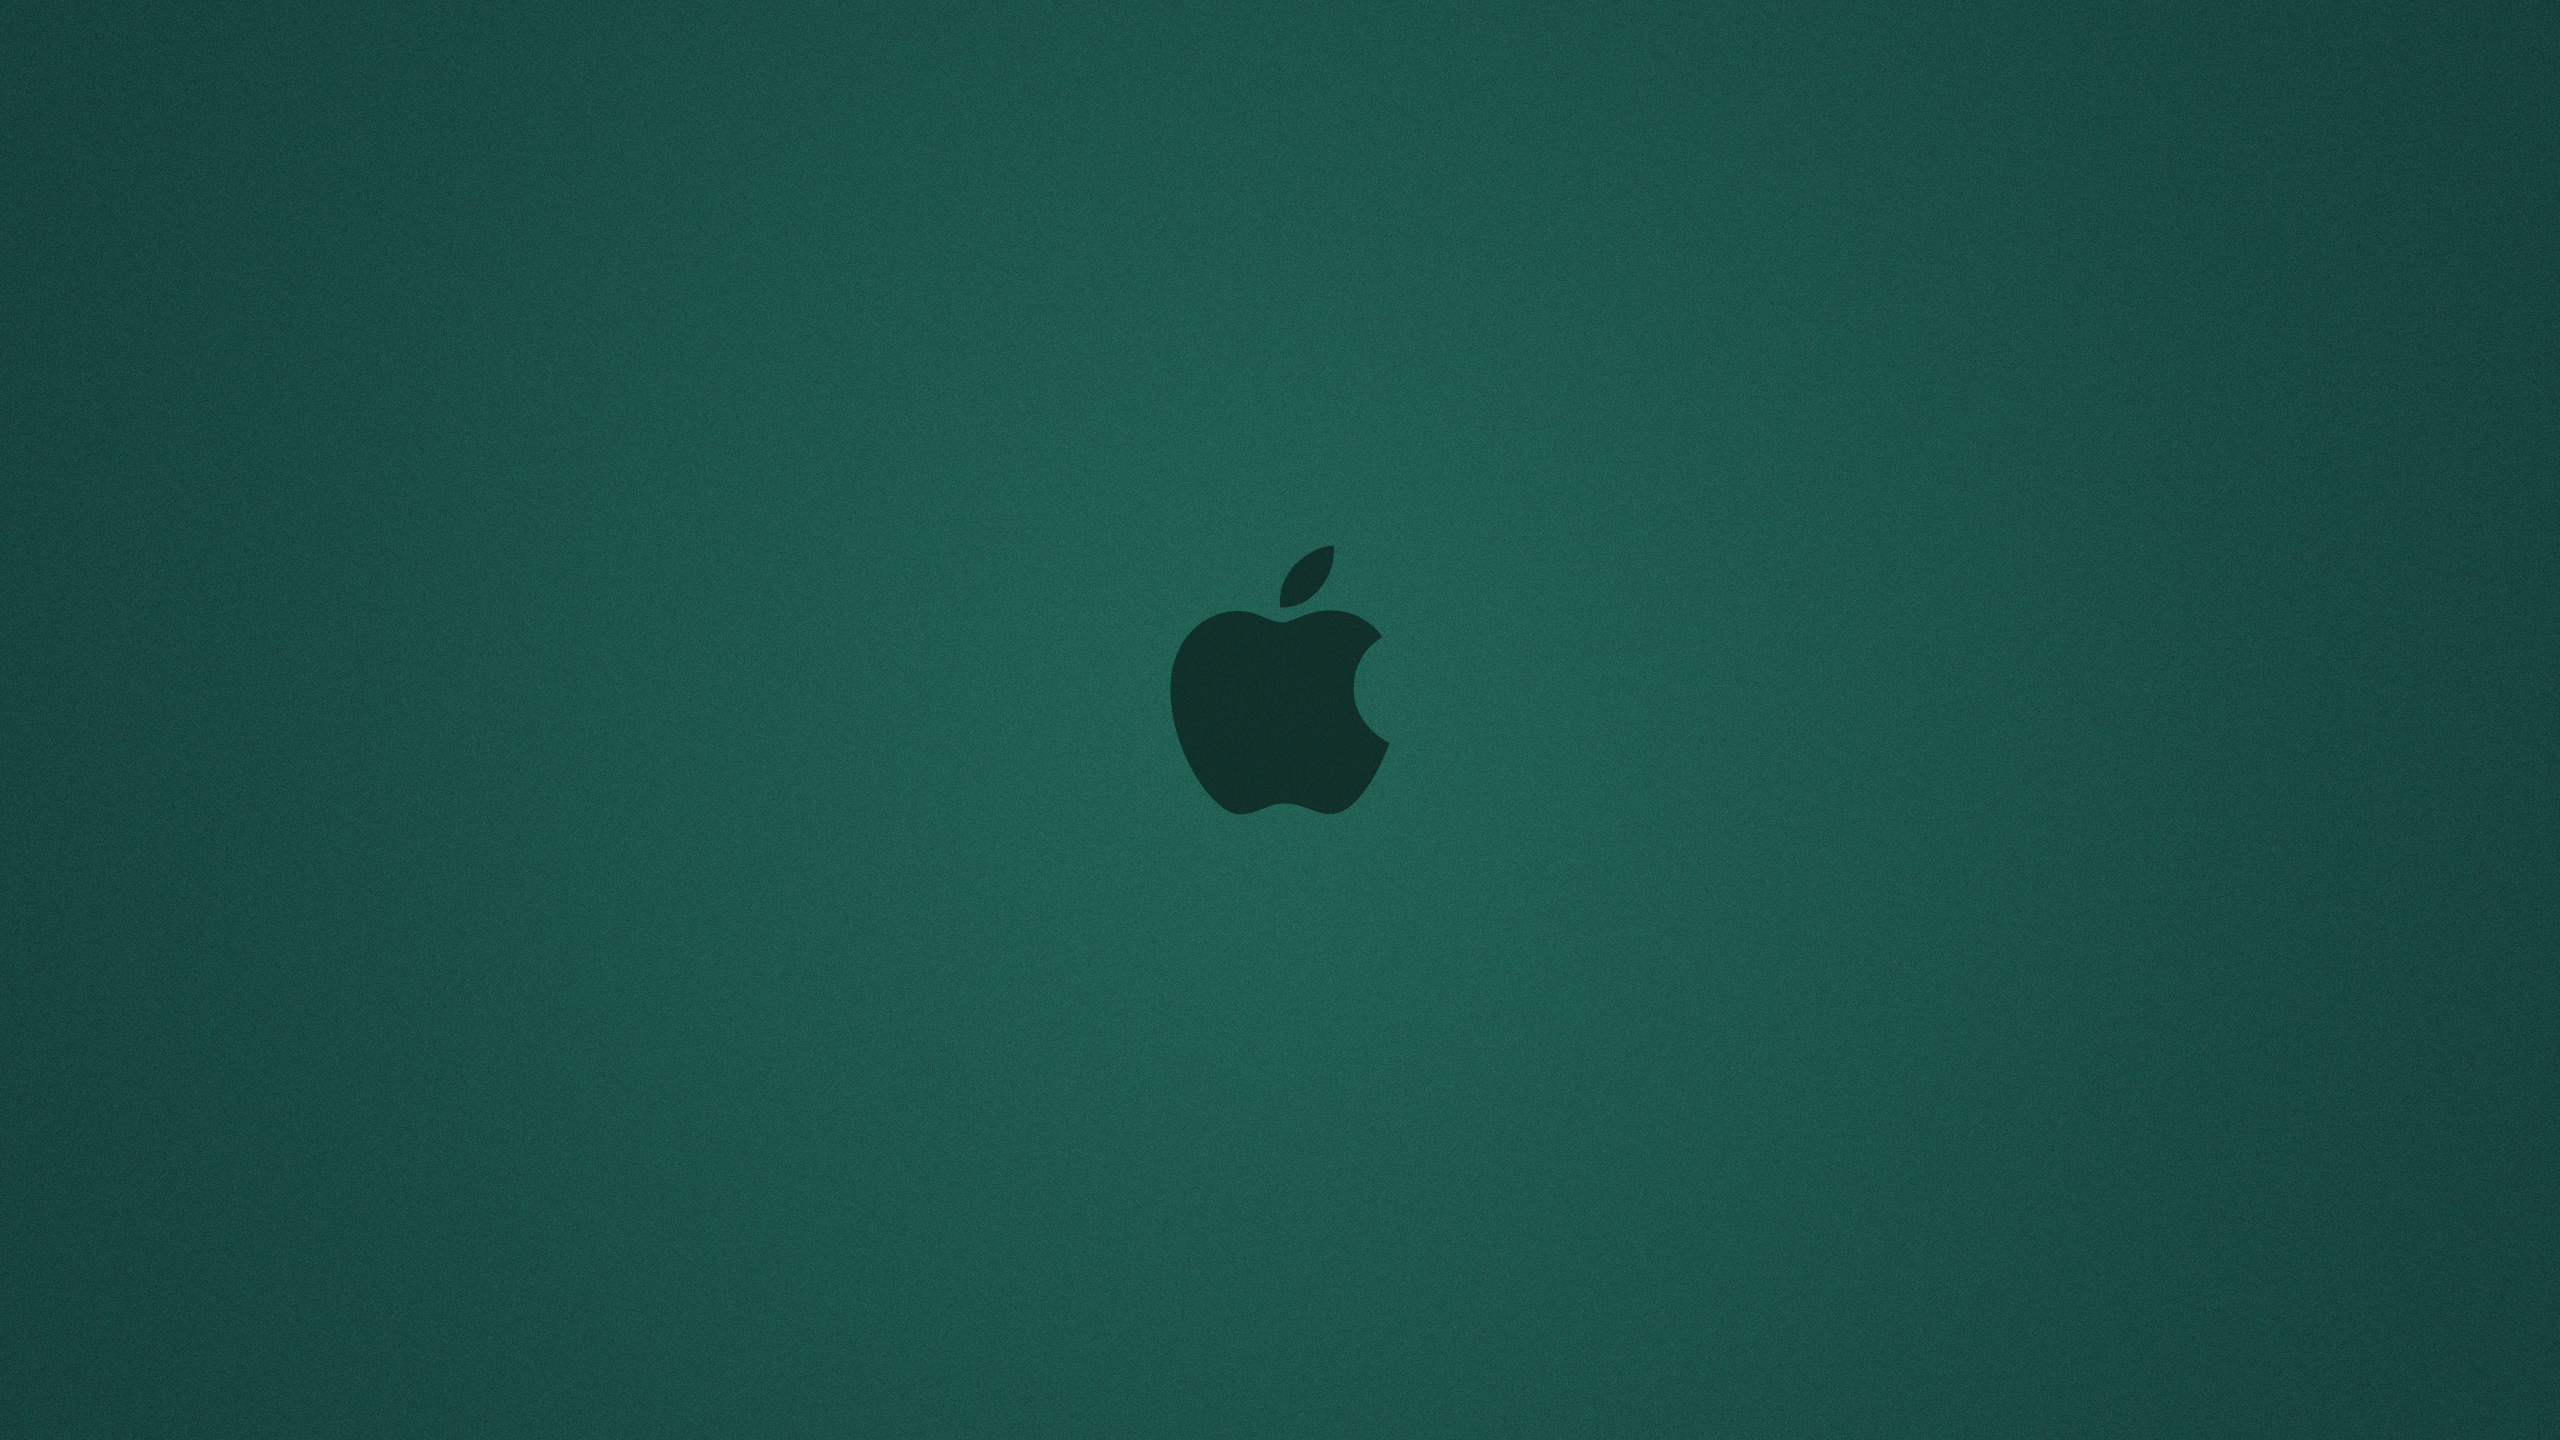 2560x1440 cyan apple background desktop pc and mac wallpaper